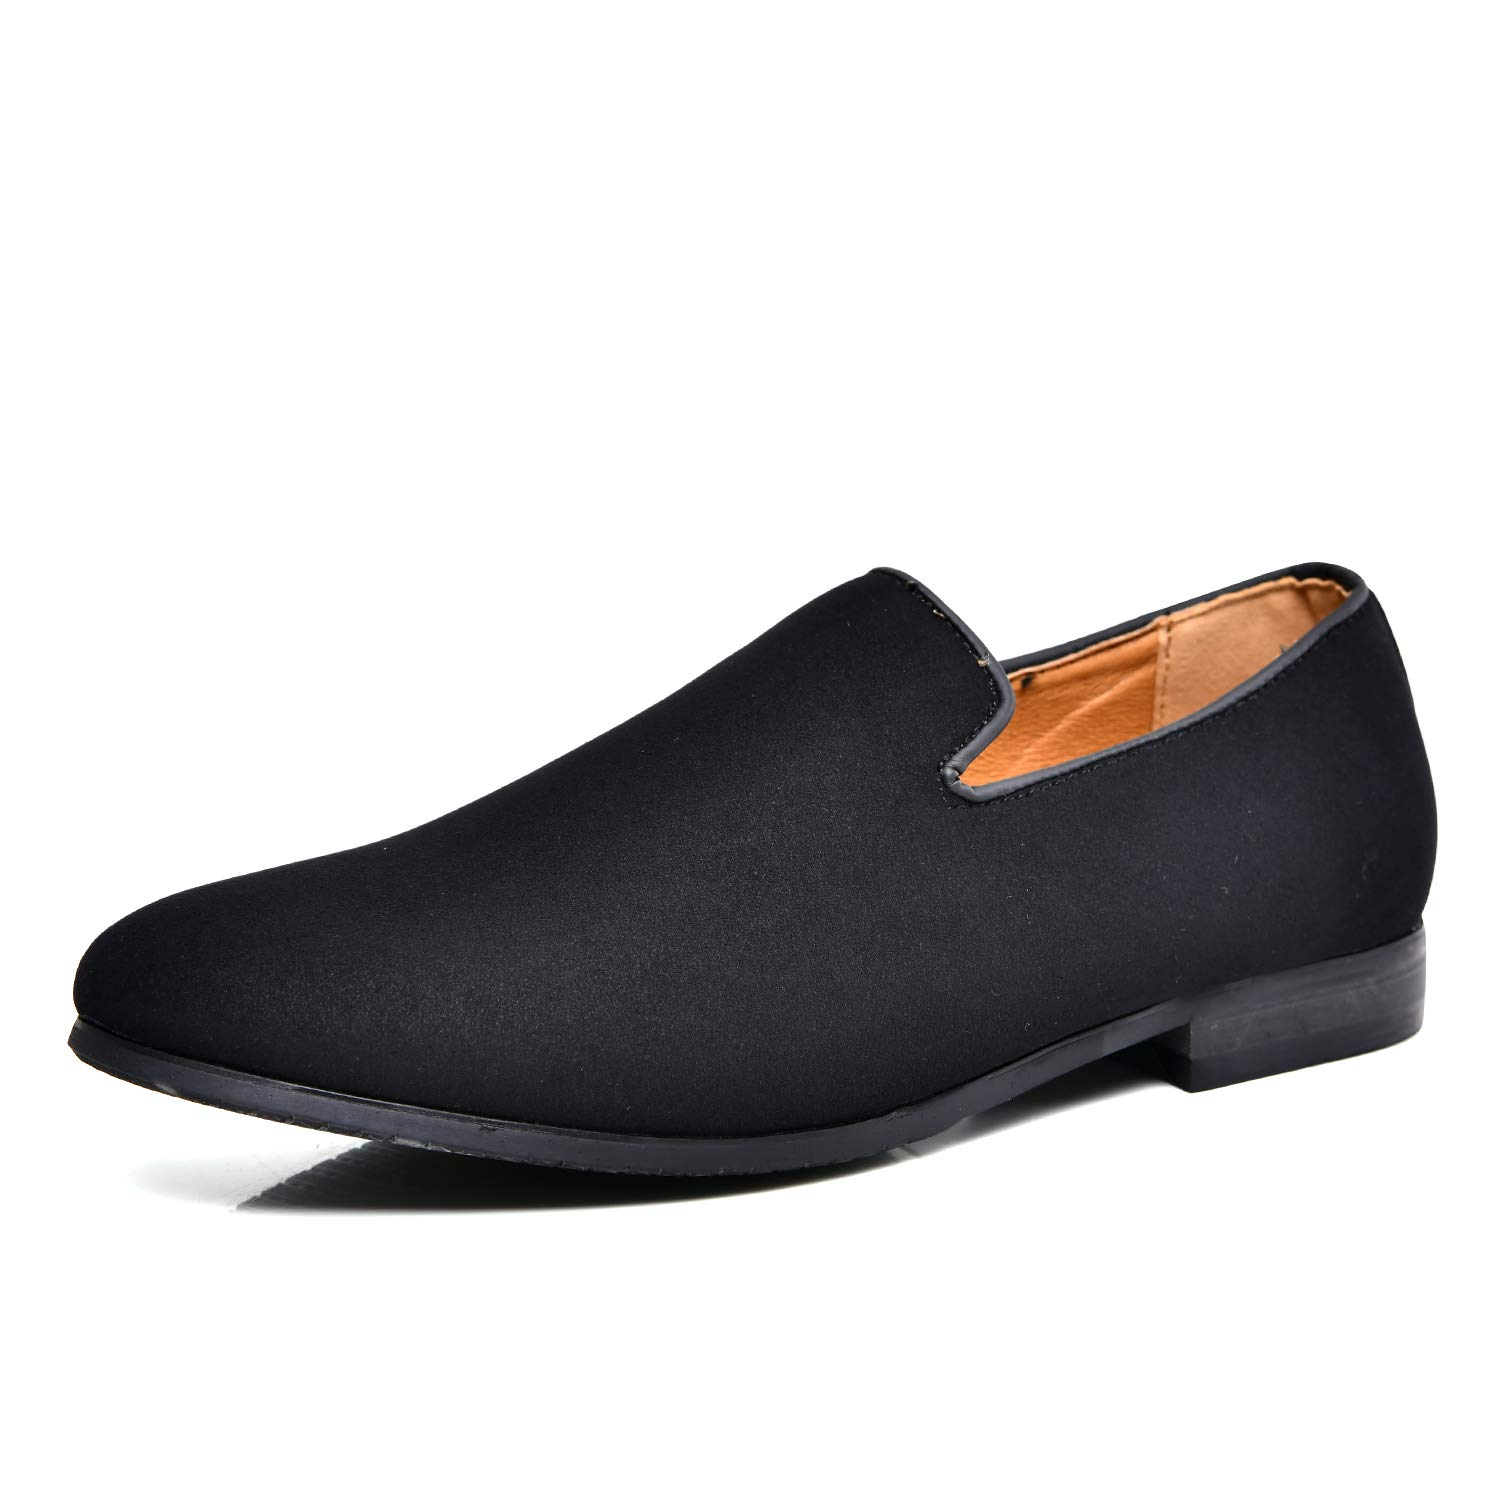 b70a601062 MoreDays Men's Slip on Loafers PU Leather Noble Comfortable Pure Color  Fashion Driving Boat Moccasins Casual Shoes